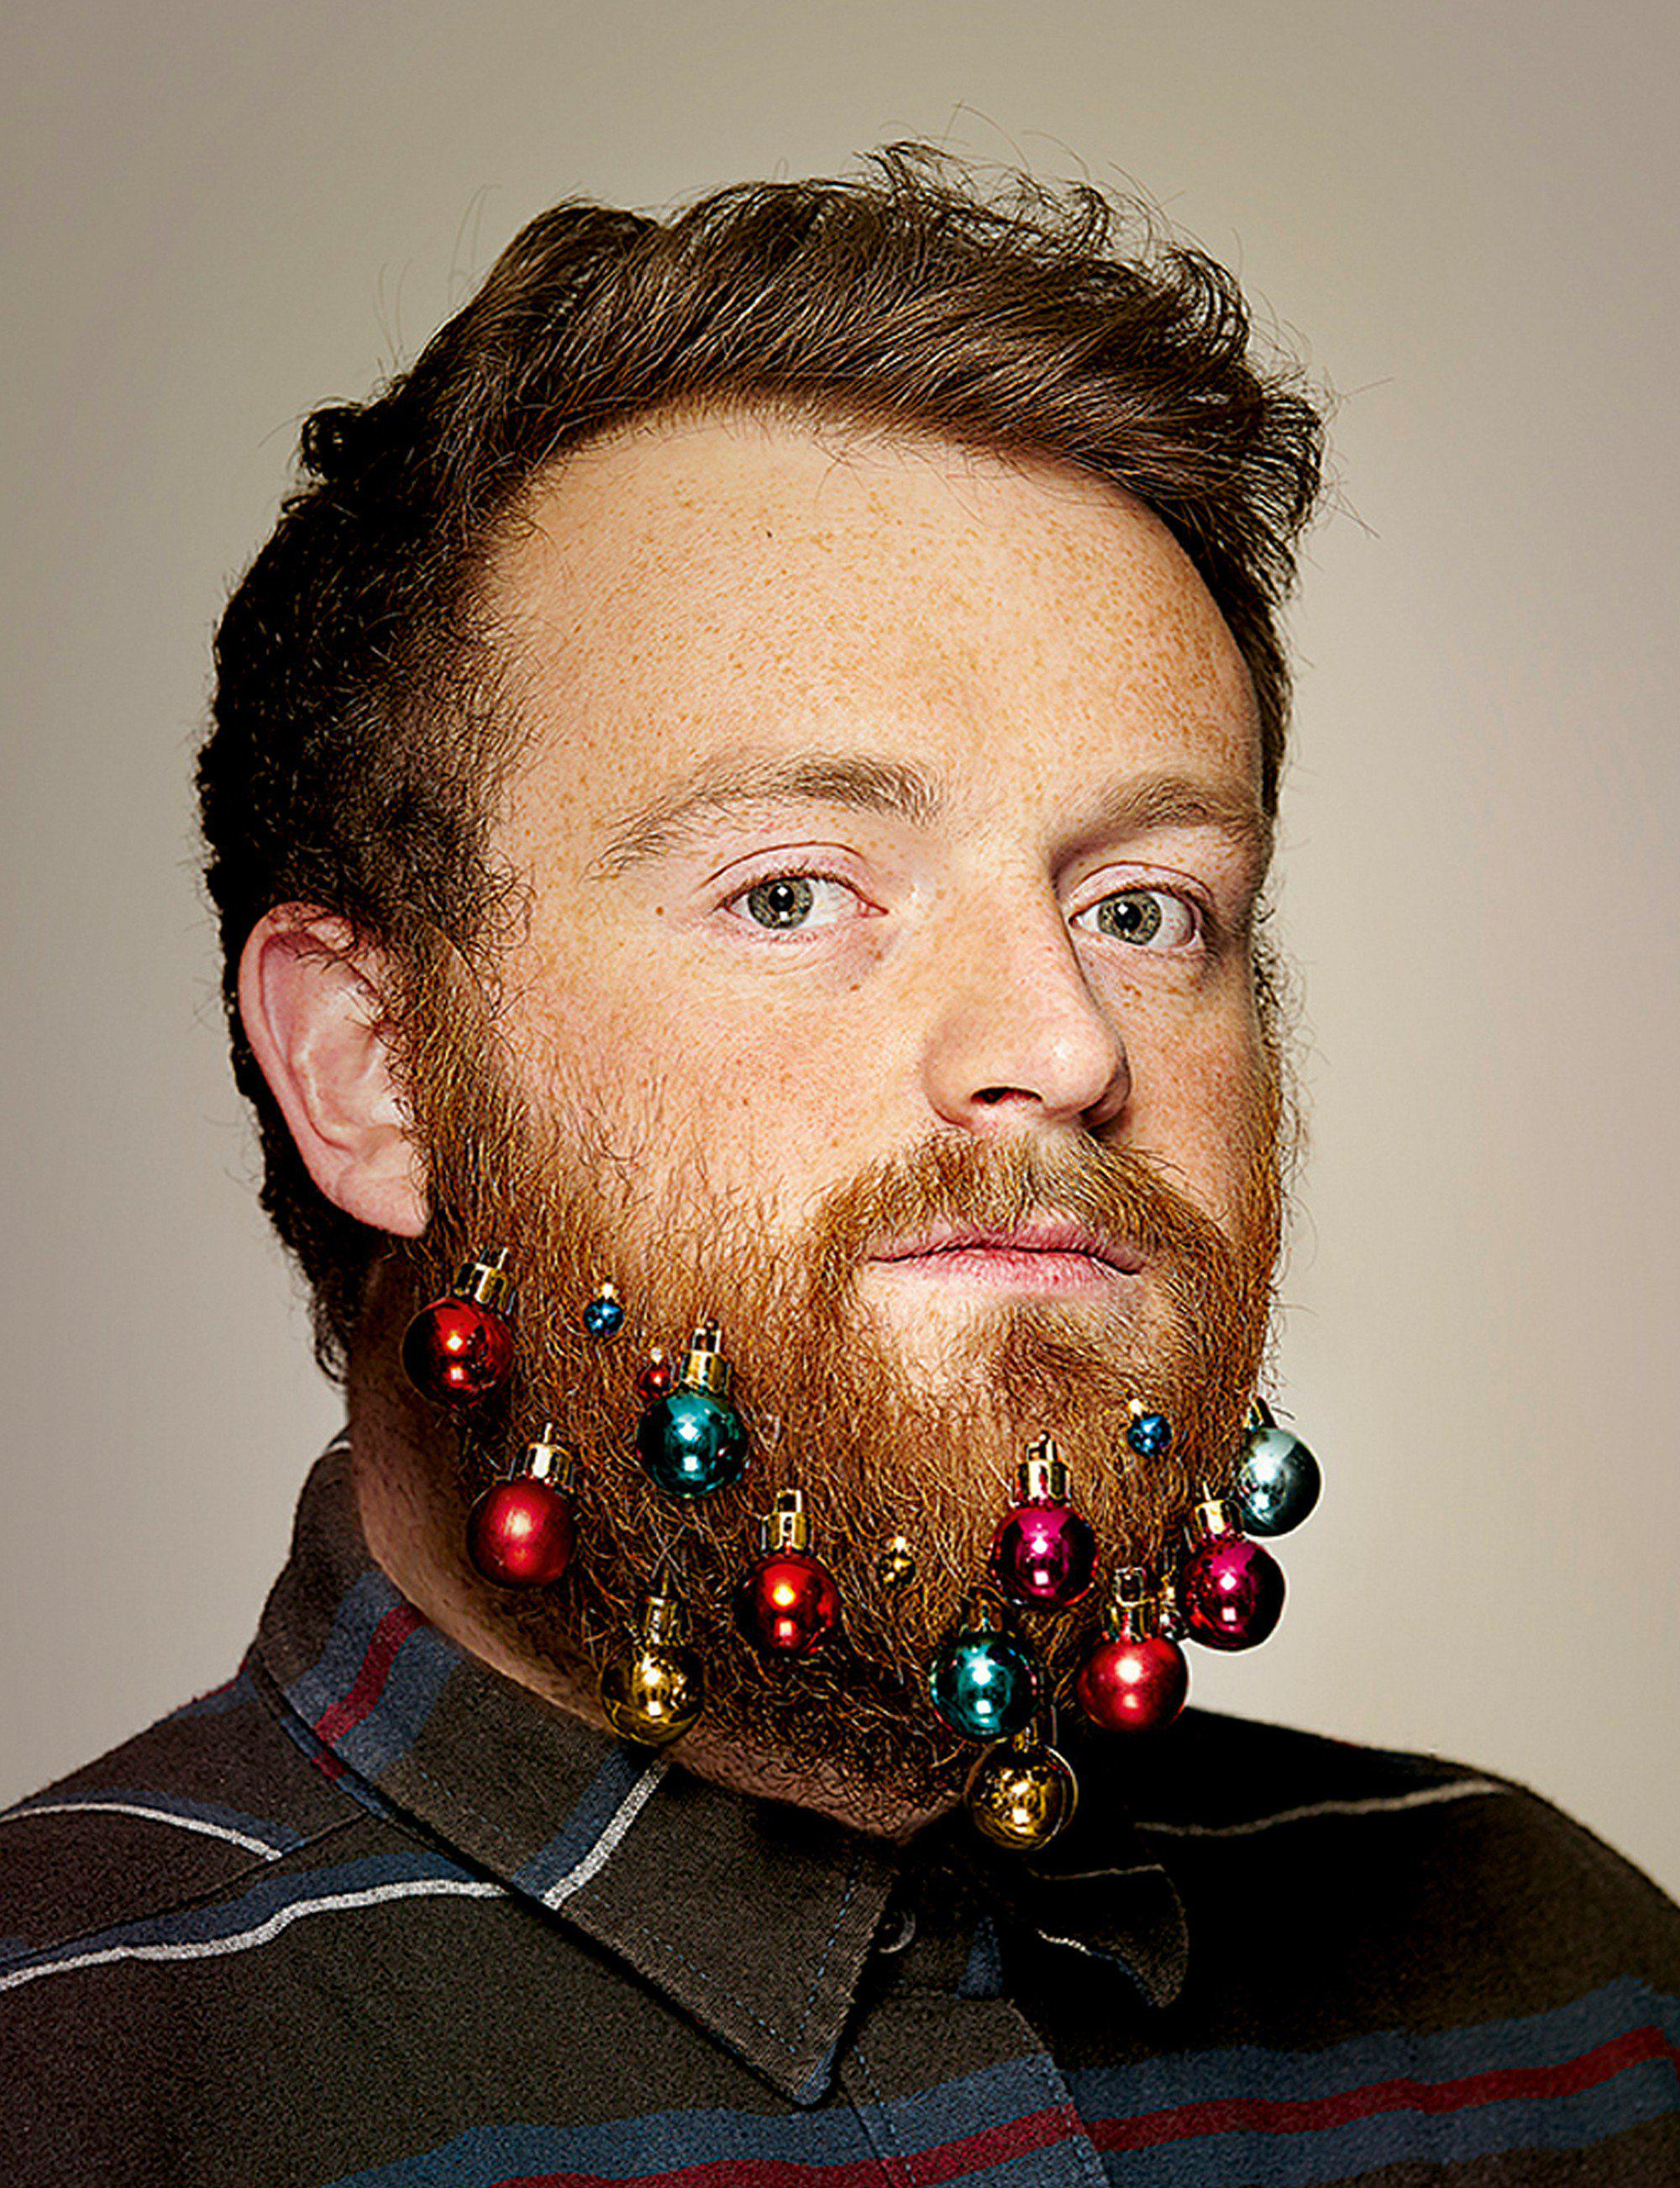 Beard Baubles Are The Latest Fashion Accessory For Hipsters This Christmas